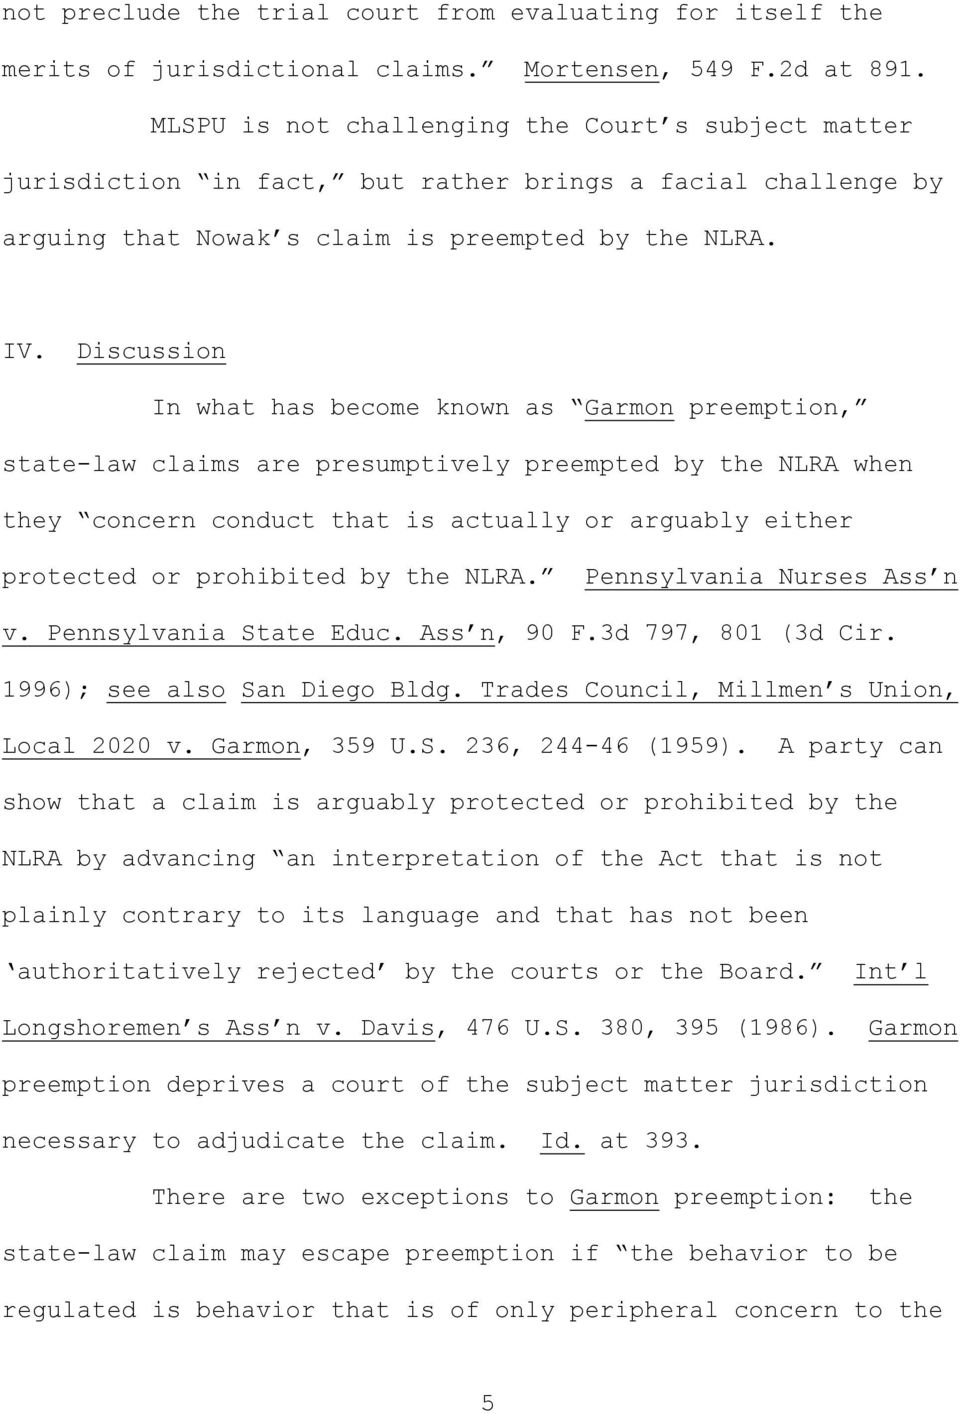 Discussion In what has become known as Garmon preemption, state-law claims are presumptively preempted by the NLRA when they concern conduct that is actually or arguably either protected or